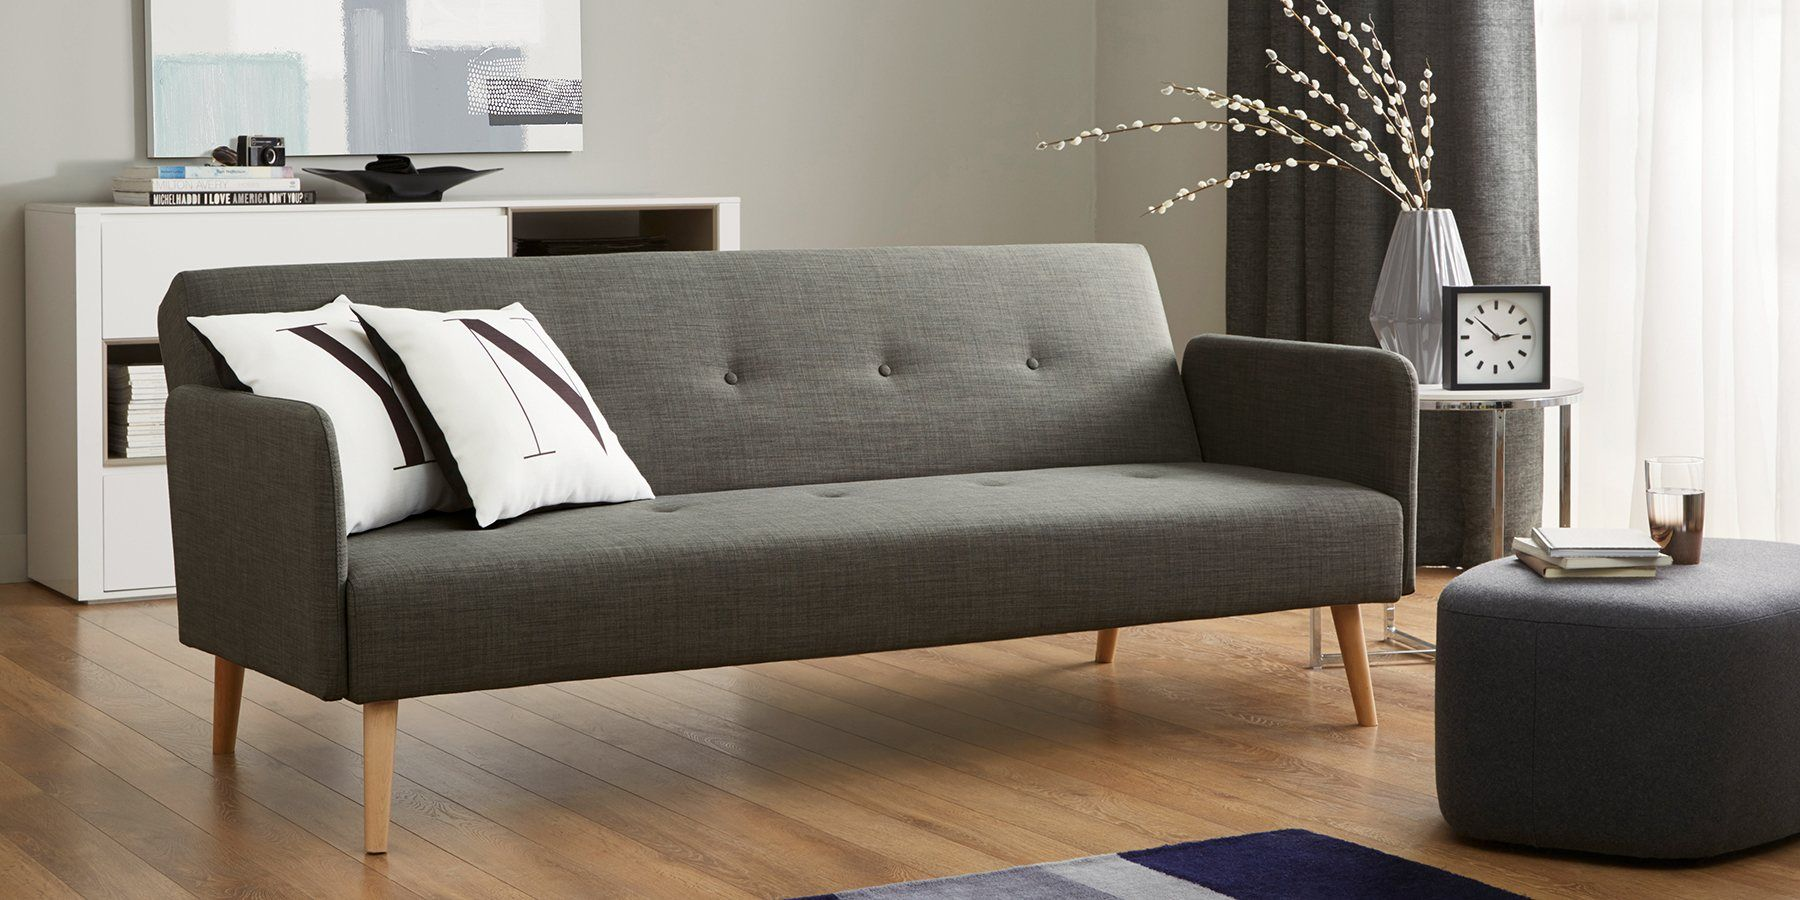 Buy Finnley Occasional Sofa Bed Medium 2 People Simple